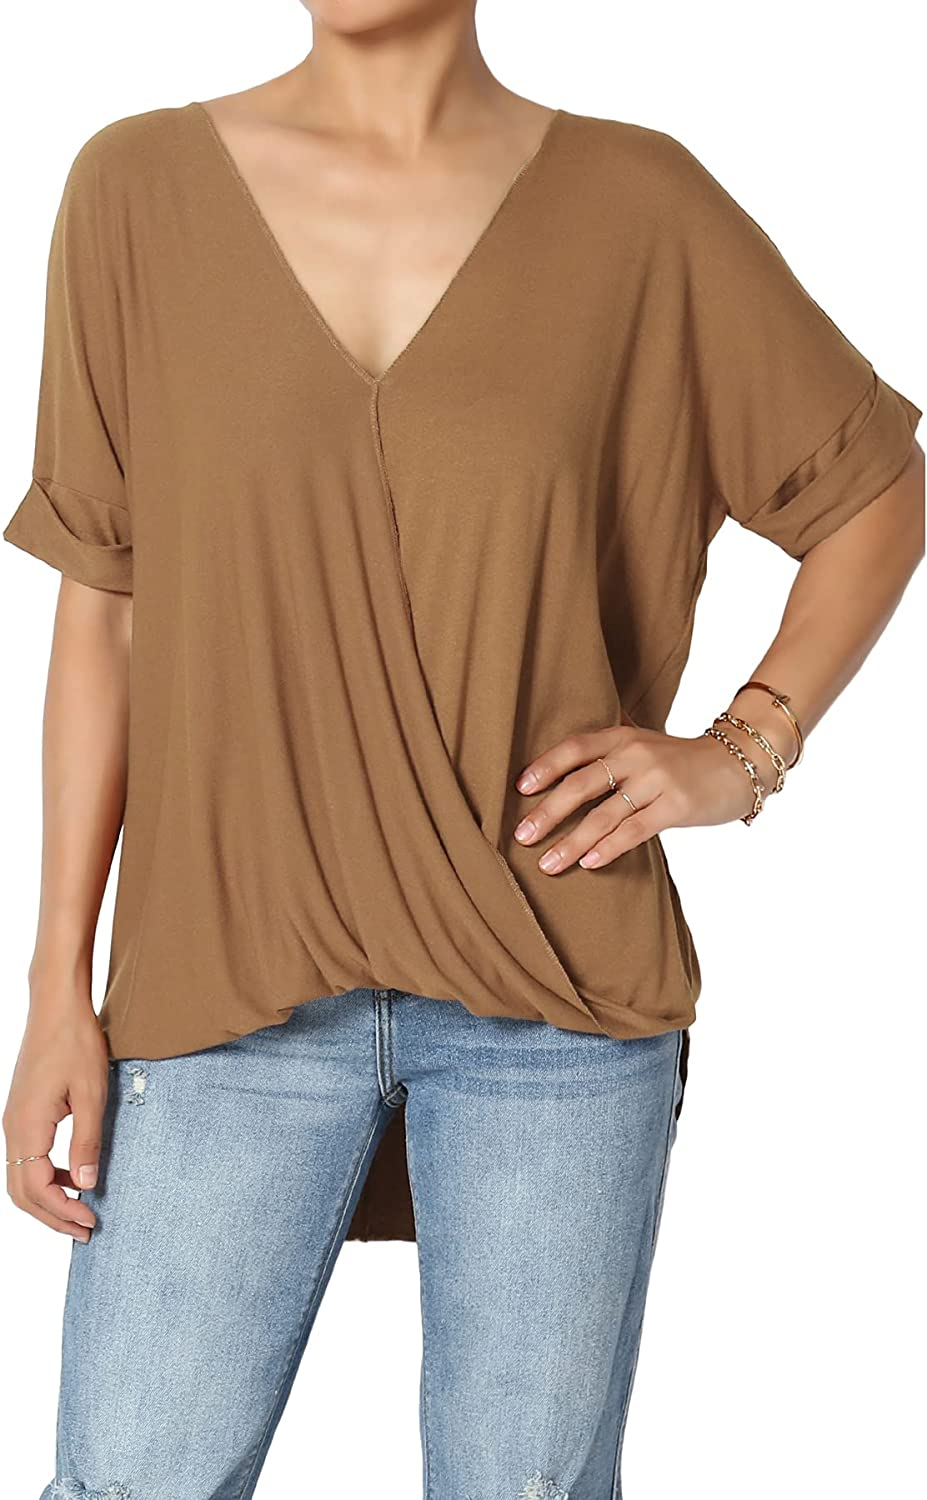 TheMogan Casual Lightweight Short Sleeve Wrap V-Neck High Low Crepe Knit Top